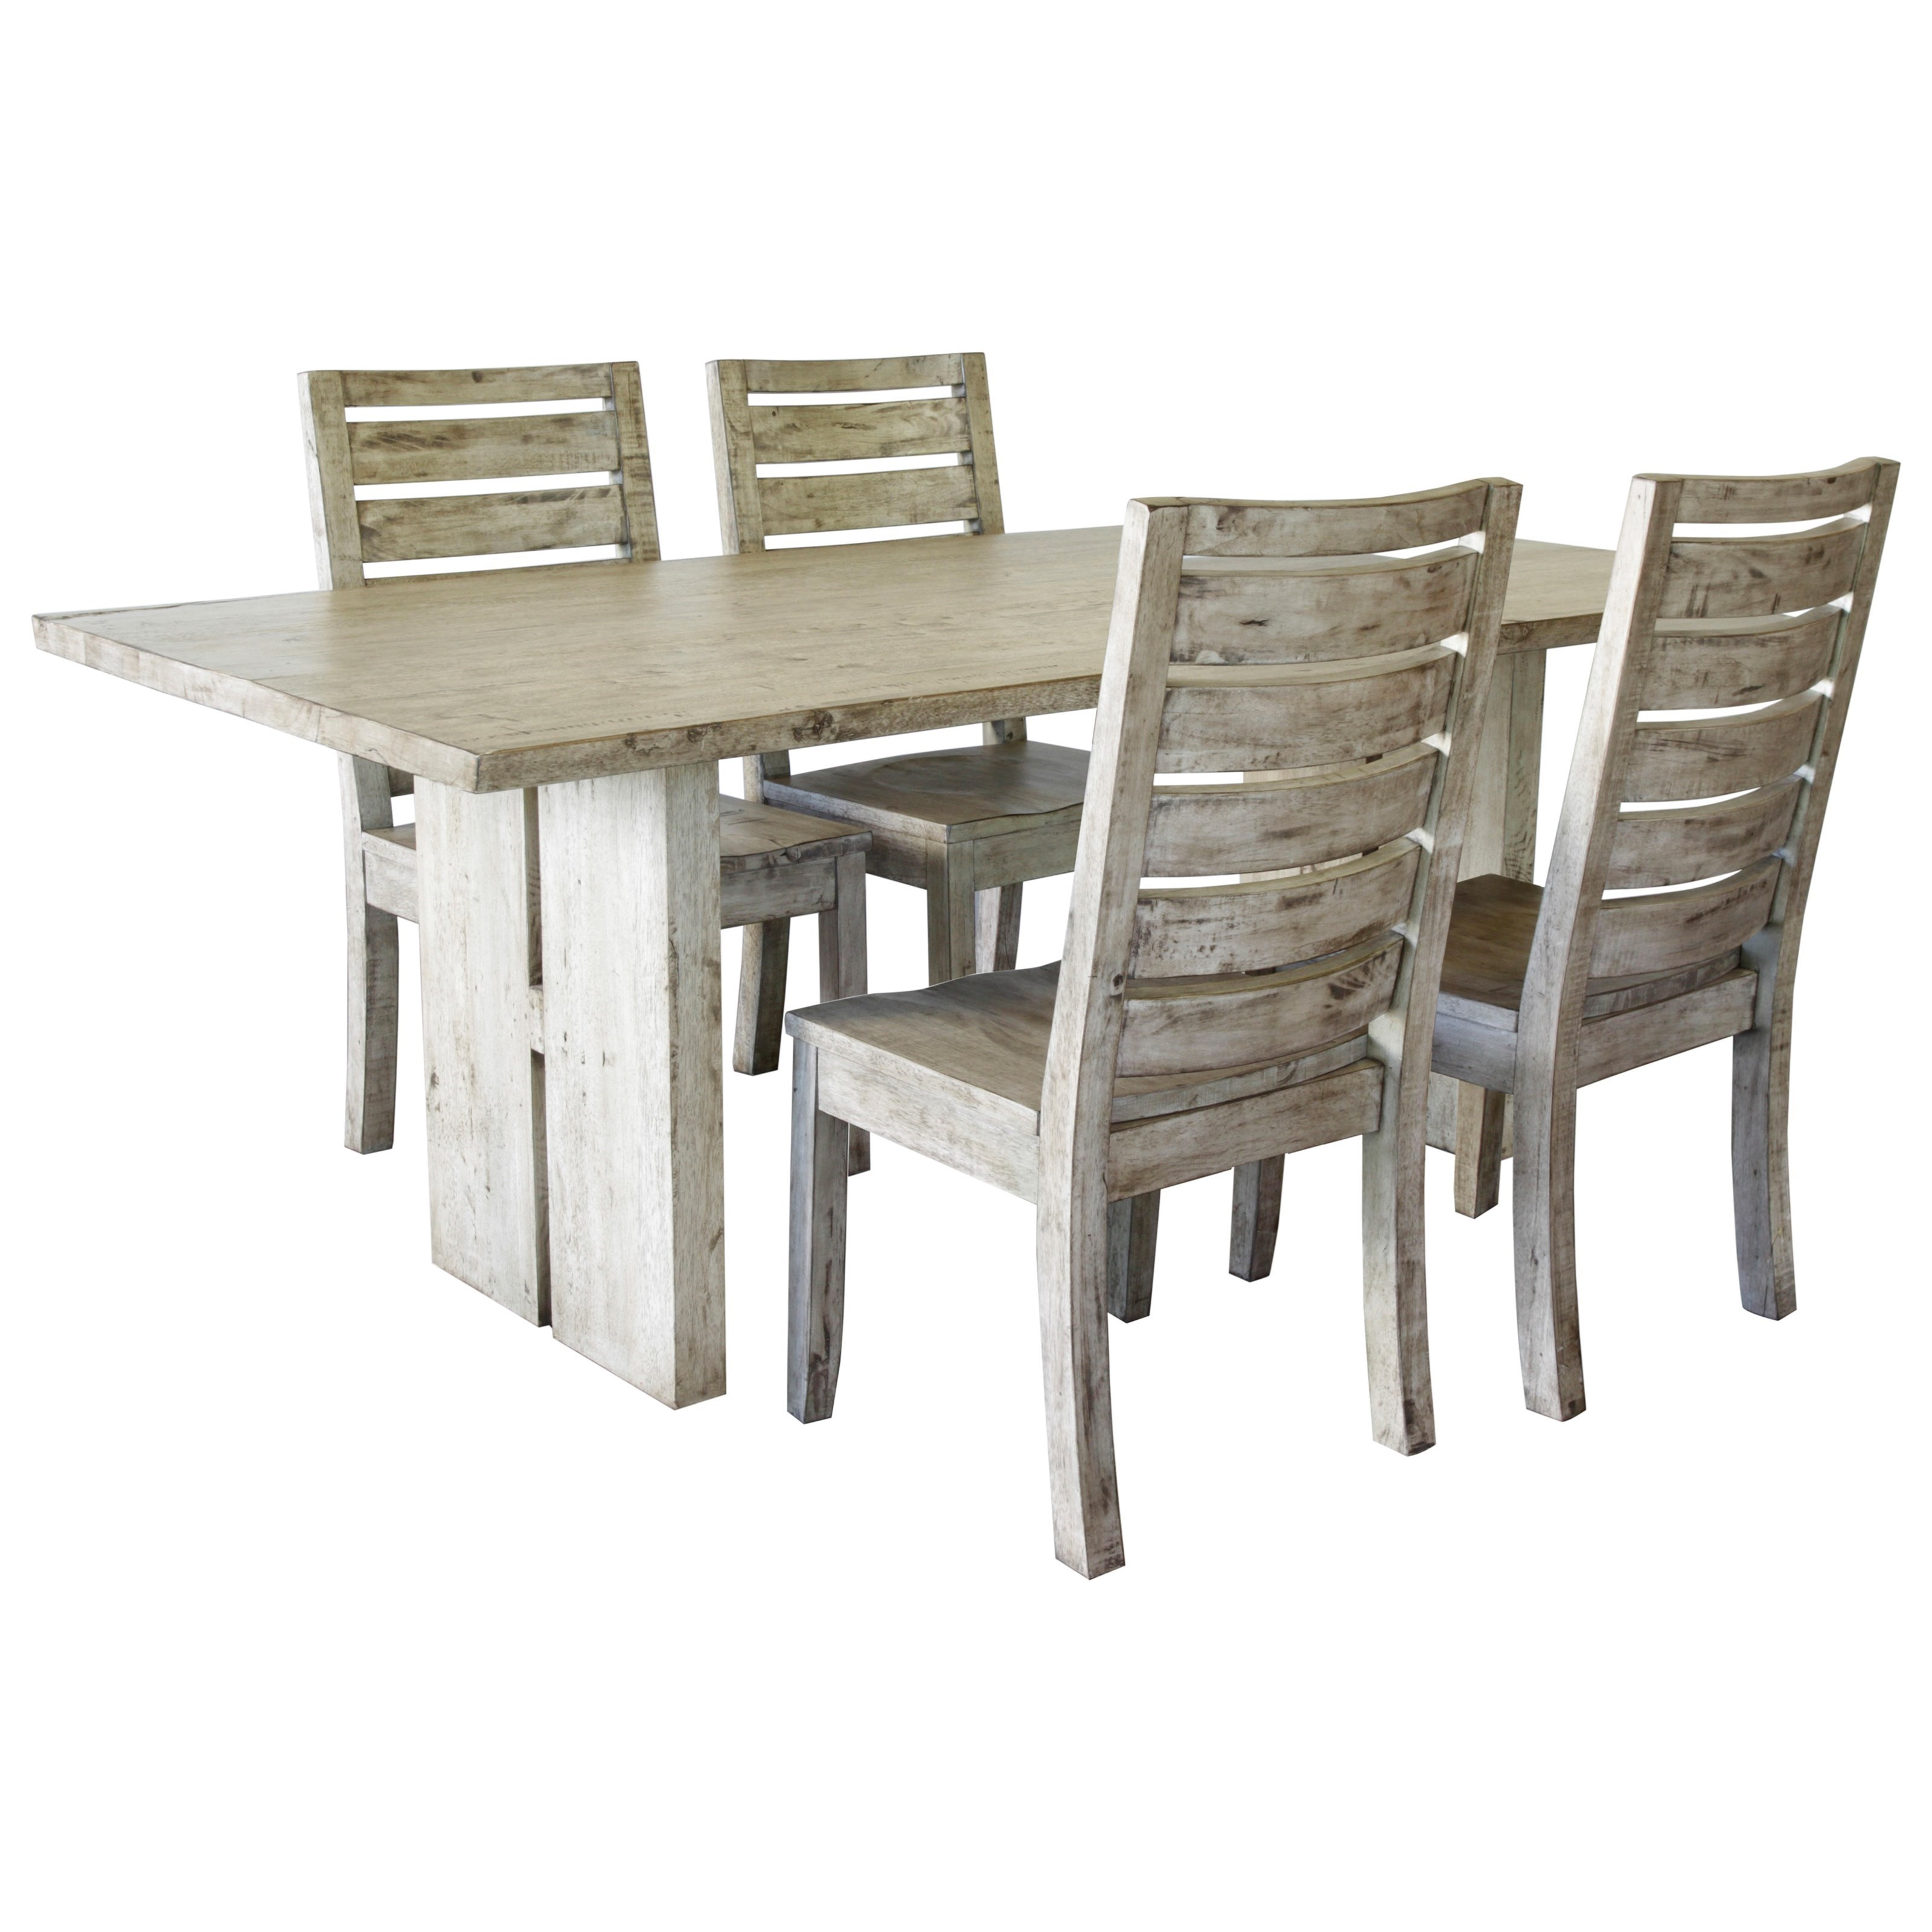 Renewal by Napa 5 Piece Dining Set by Napa Furniture Designs at Red Knot